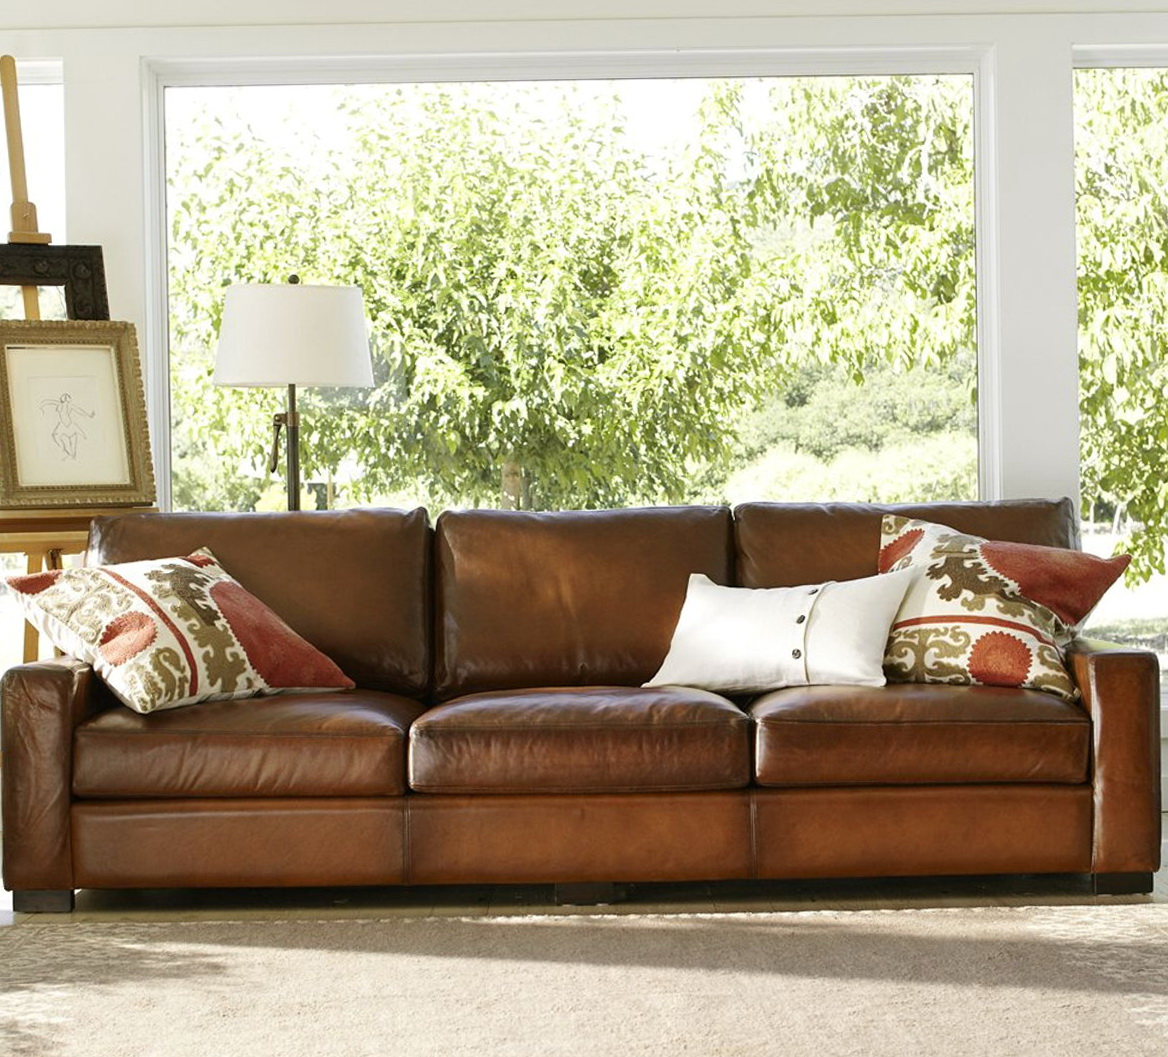 Leather Cushions For Couch